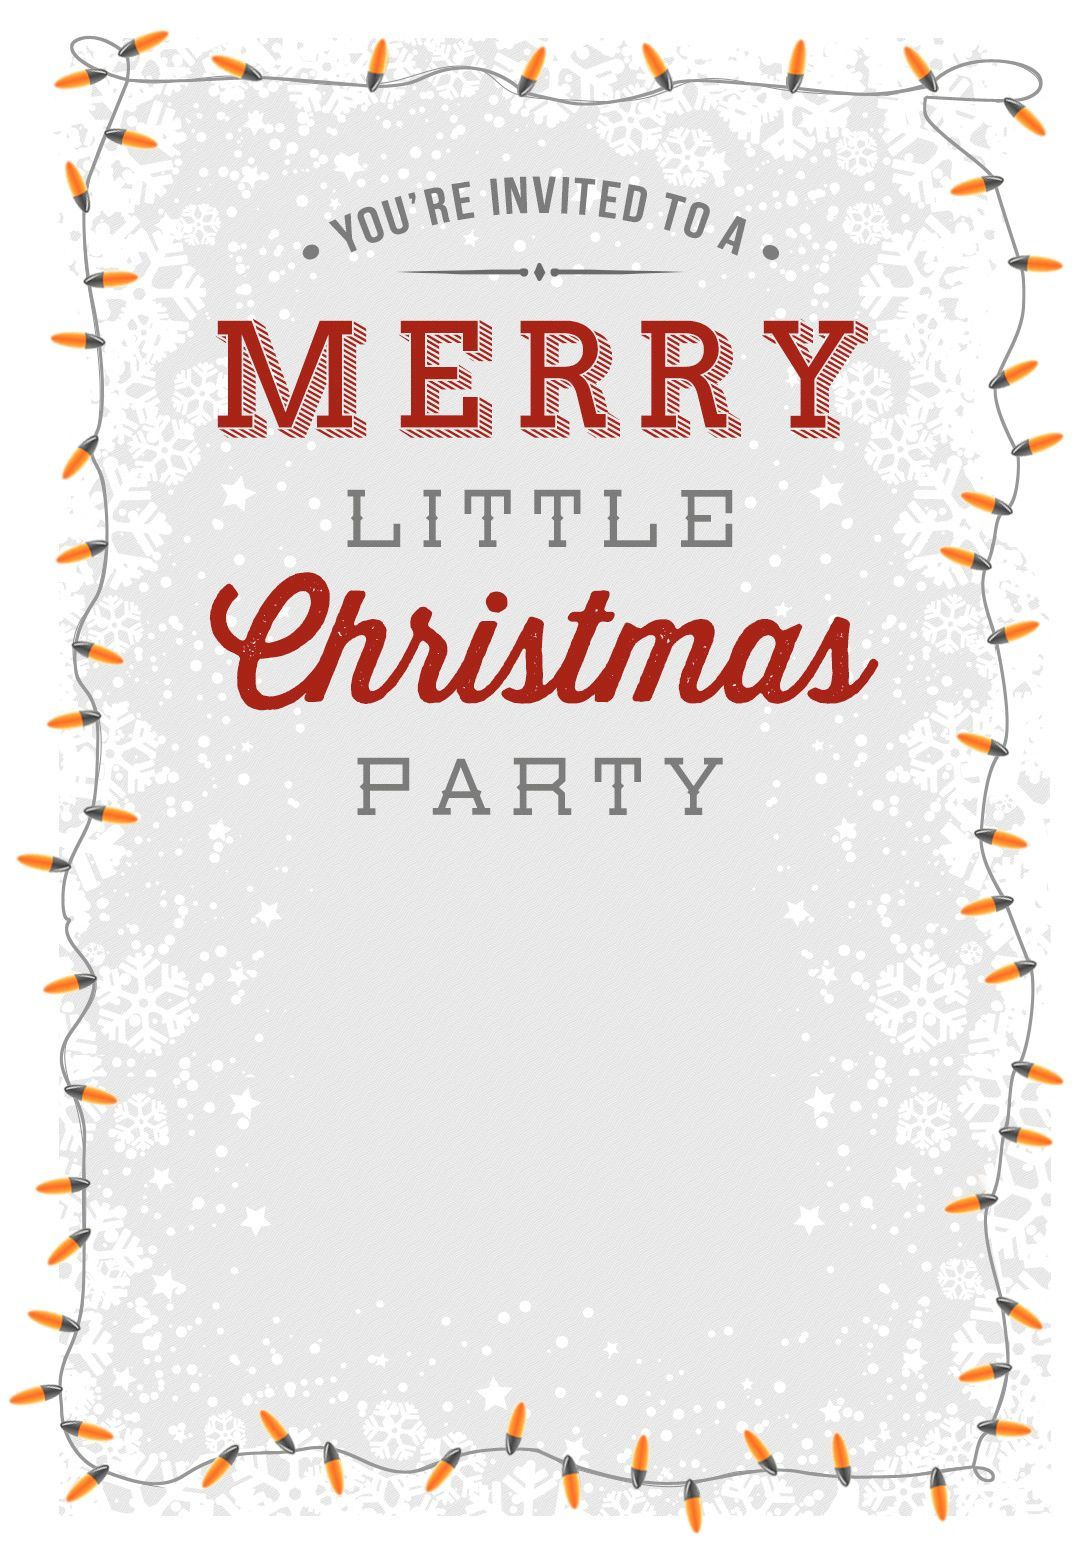 007 Magnificent Christma Party Invite Template Highest Clarity  Microsoft Word Free Download Holiday Invitation PowerpointFull